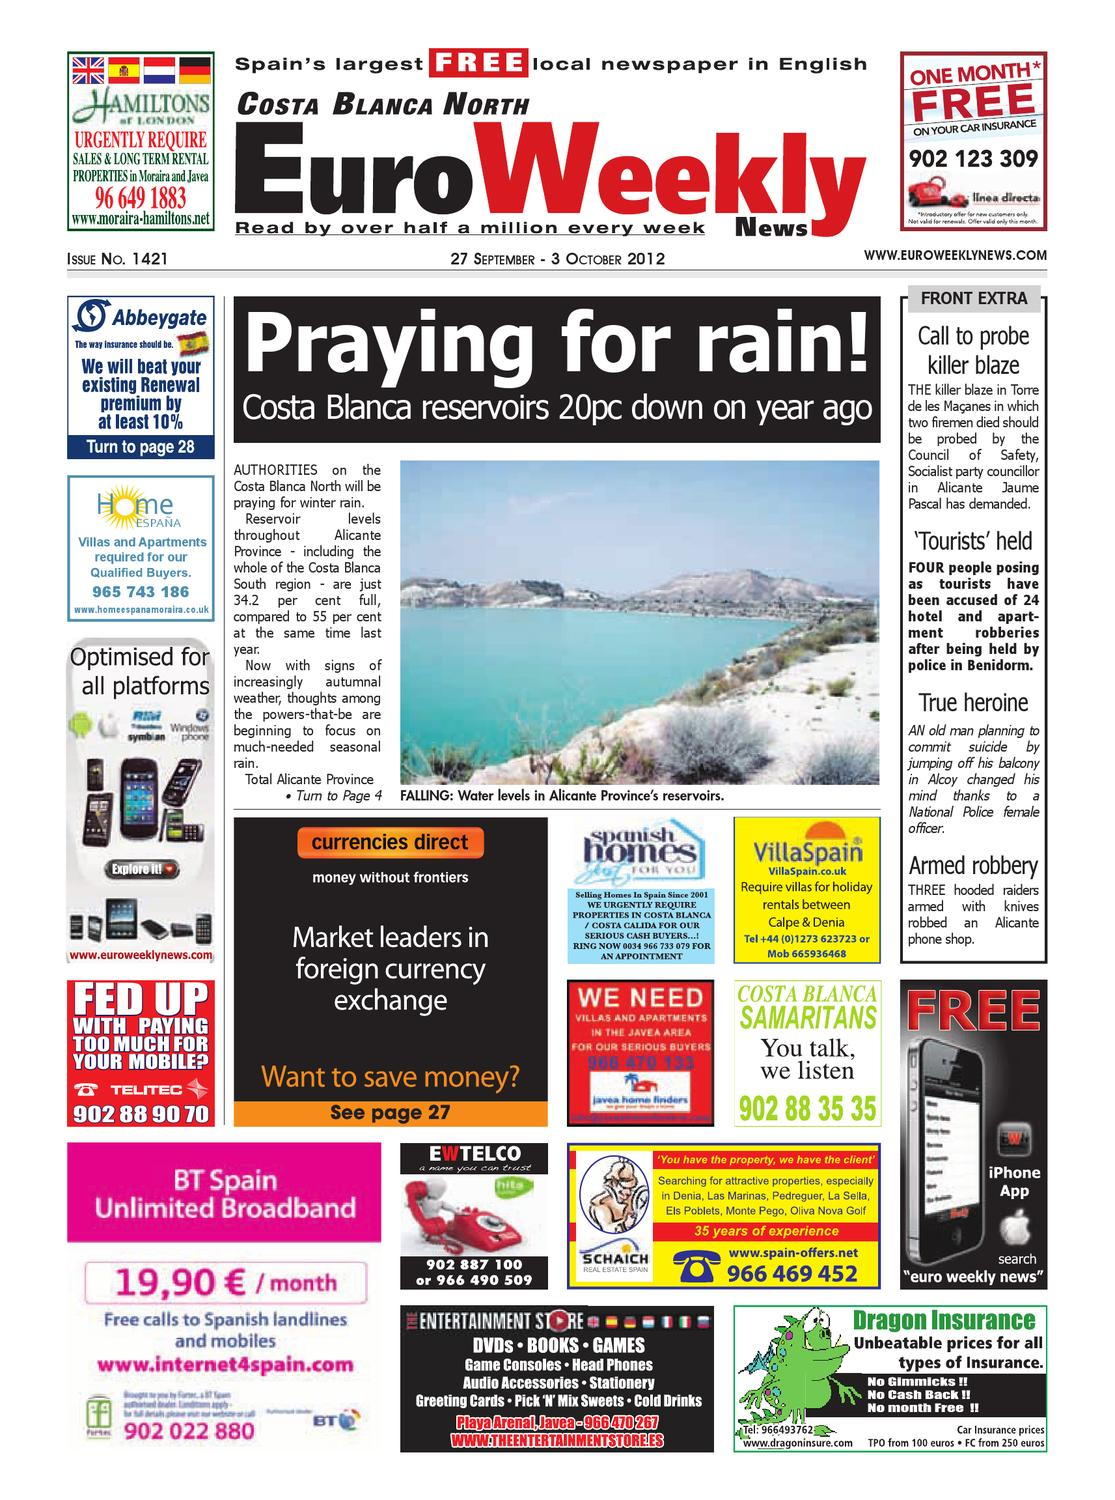 Costa blanca north 27 september 3 october 2012 issue 1421 by euro costa blanca north 27 september 3 october 2012 issue 1421 by euro weekly news media sa issuu fandeluxe Images